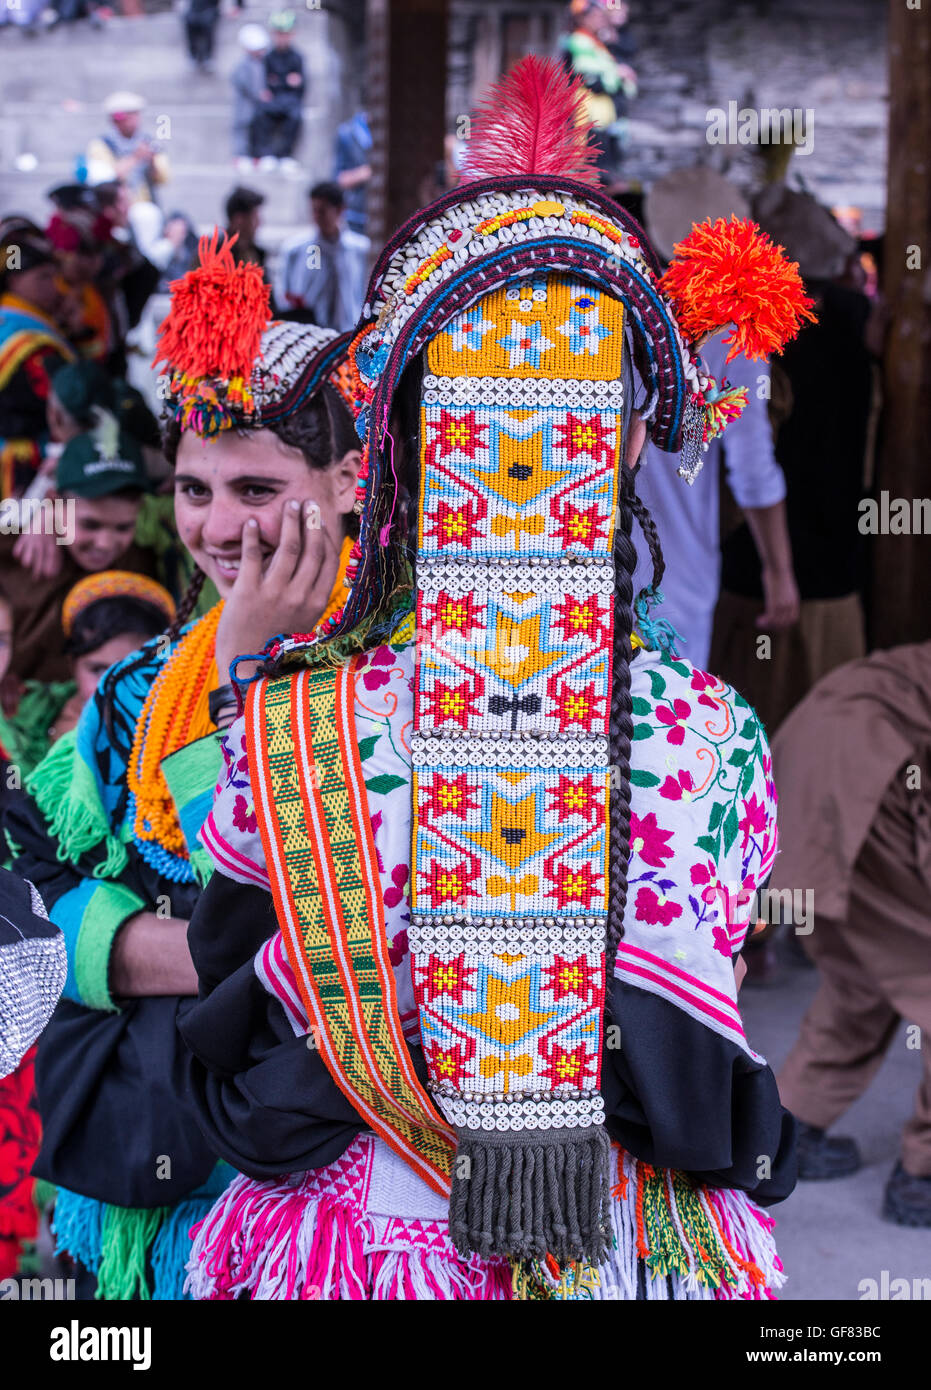 Kalash woman wearing a traditional Kalash dress and beaded headdress. Over the beaded headress is a cowrie decorated - Stock Image